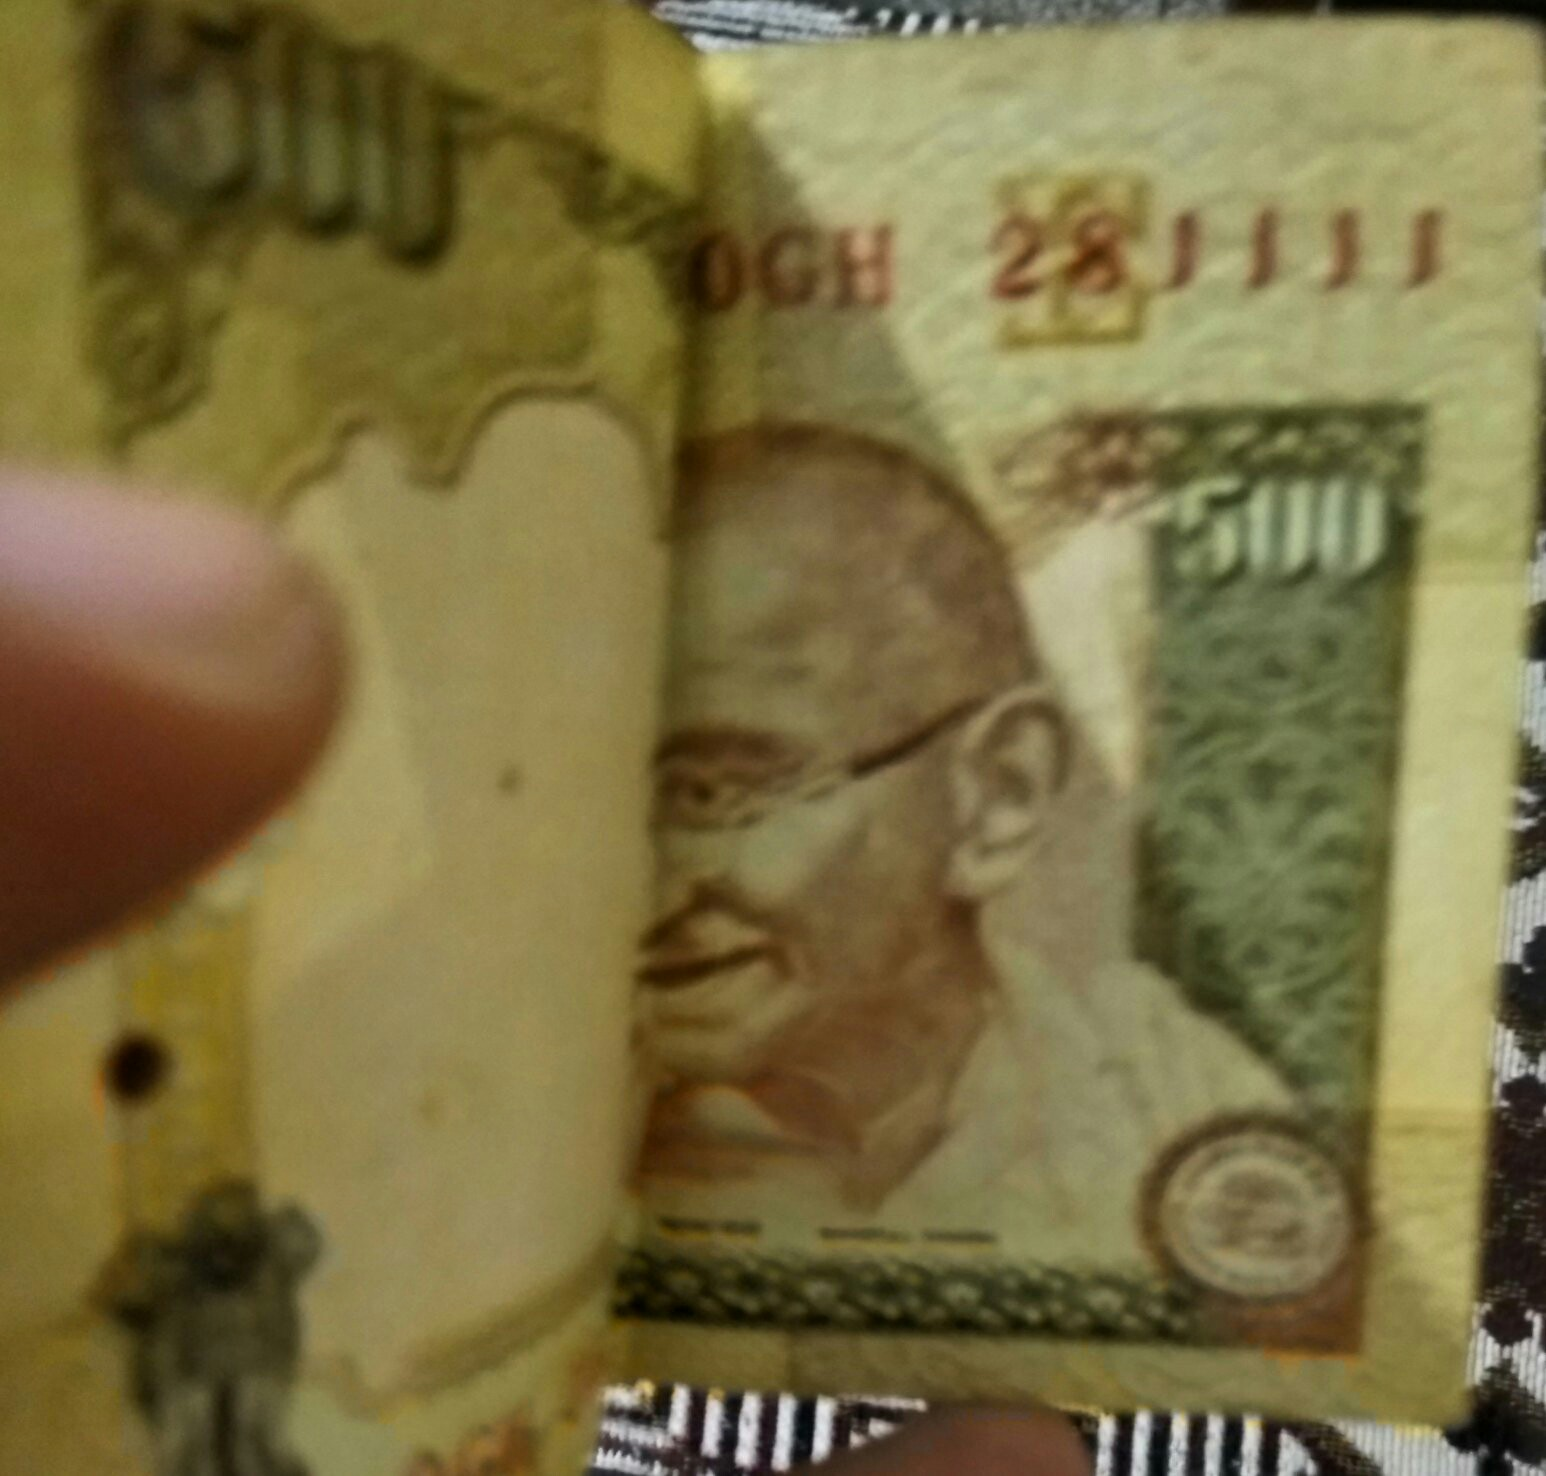 India Currency of Rs. 500 and Rs. 1000 pulled out of circulation immediately